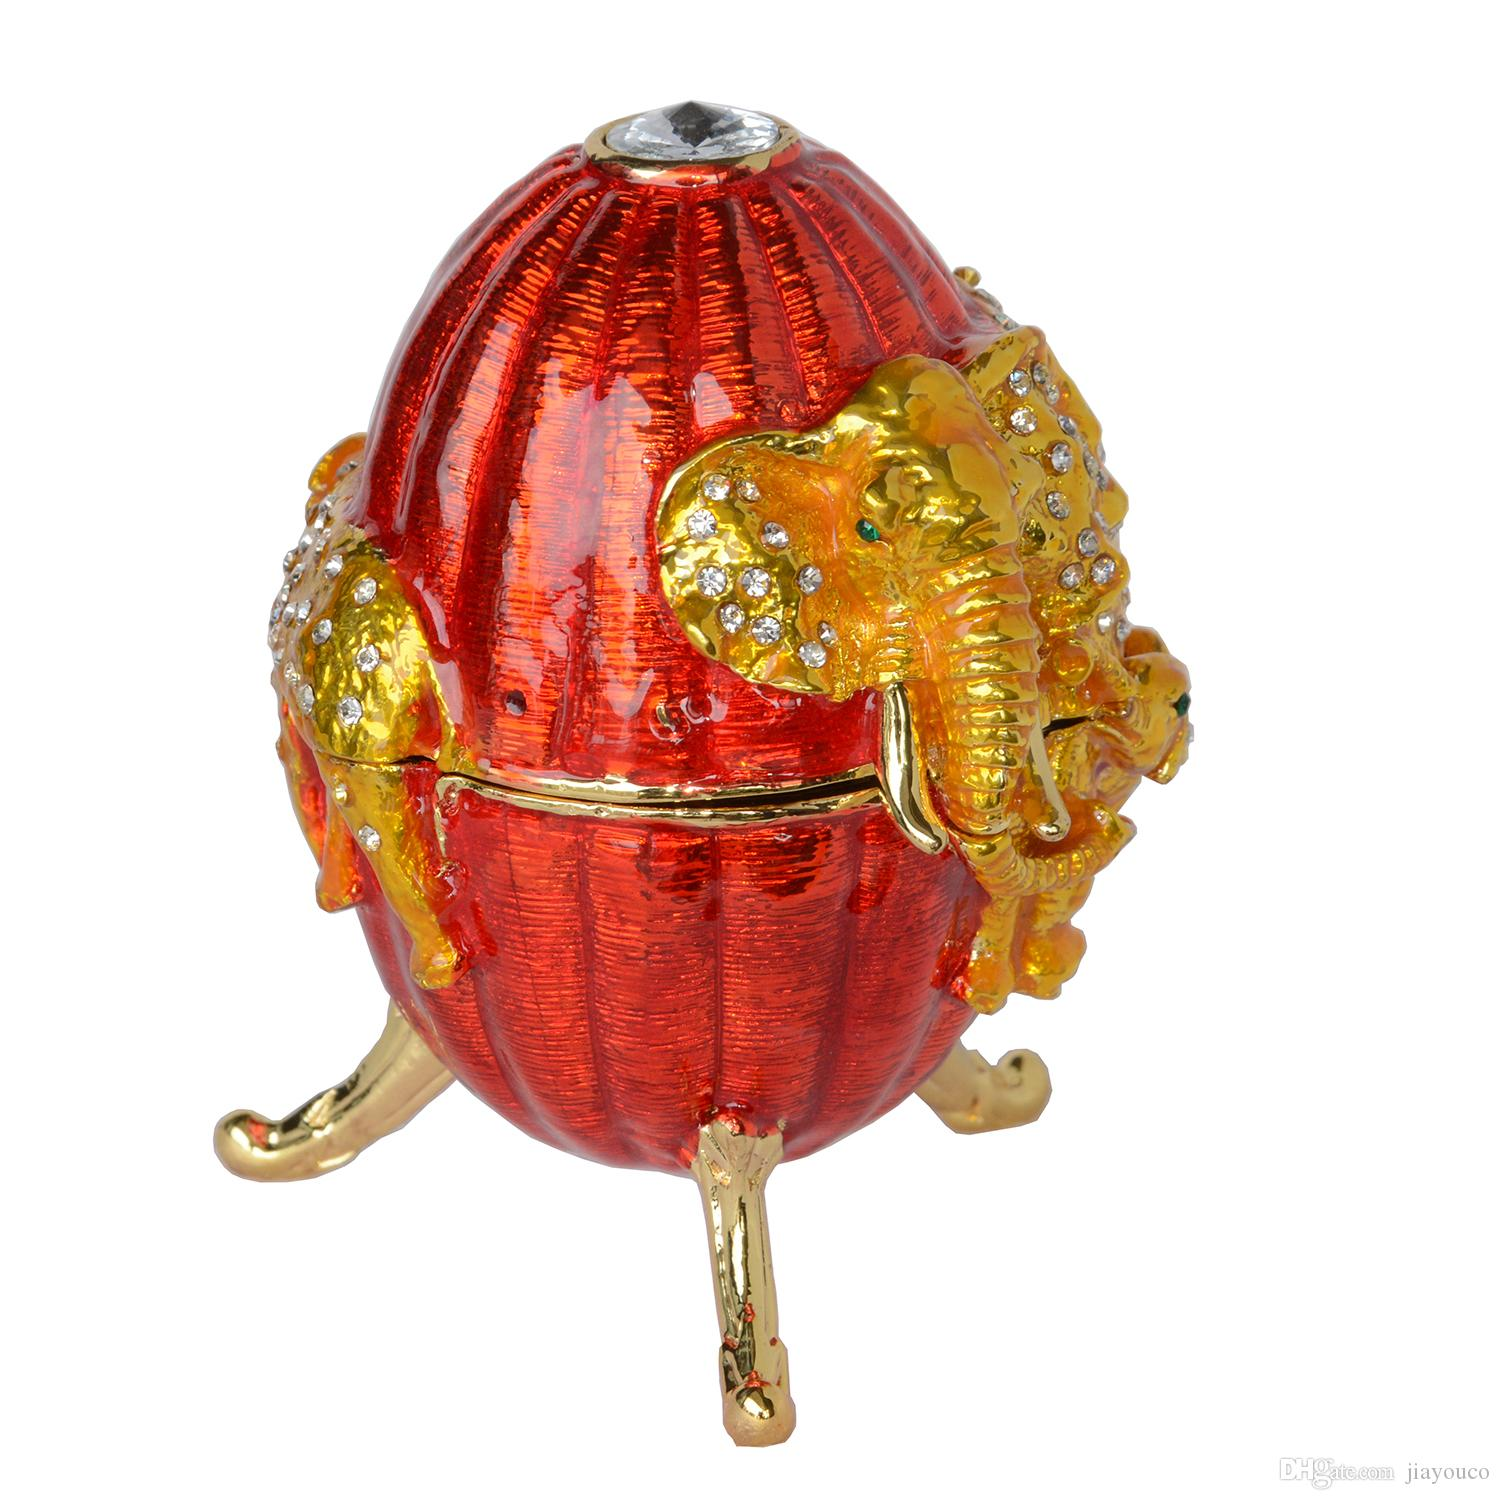 2018 russian craft faberge style elephant on easter egg bejeweled 2018 russian craft faberge style elephant on easter egg bejeweled trinket box metal jewelry box home decor sculpture christmas gifts from jiayouco negle Images